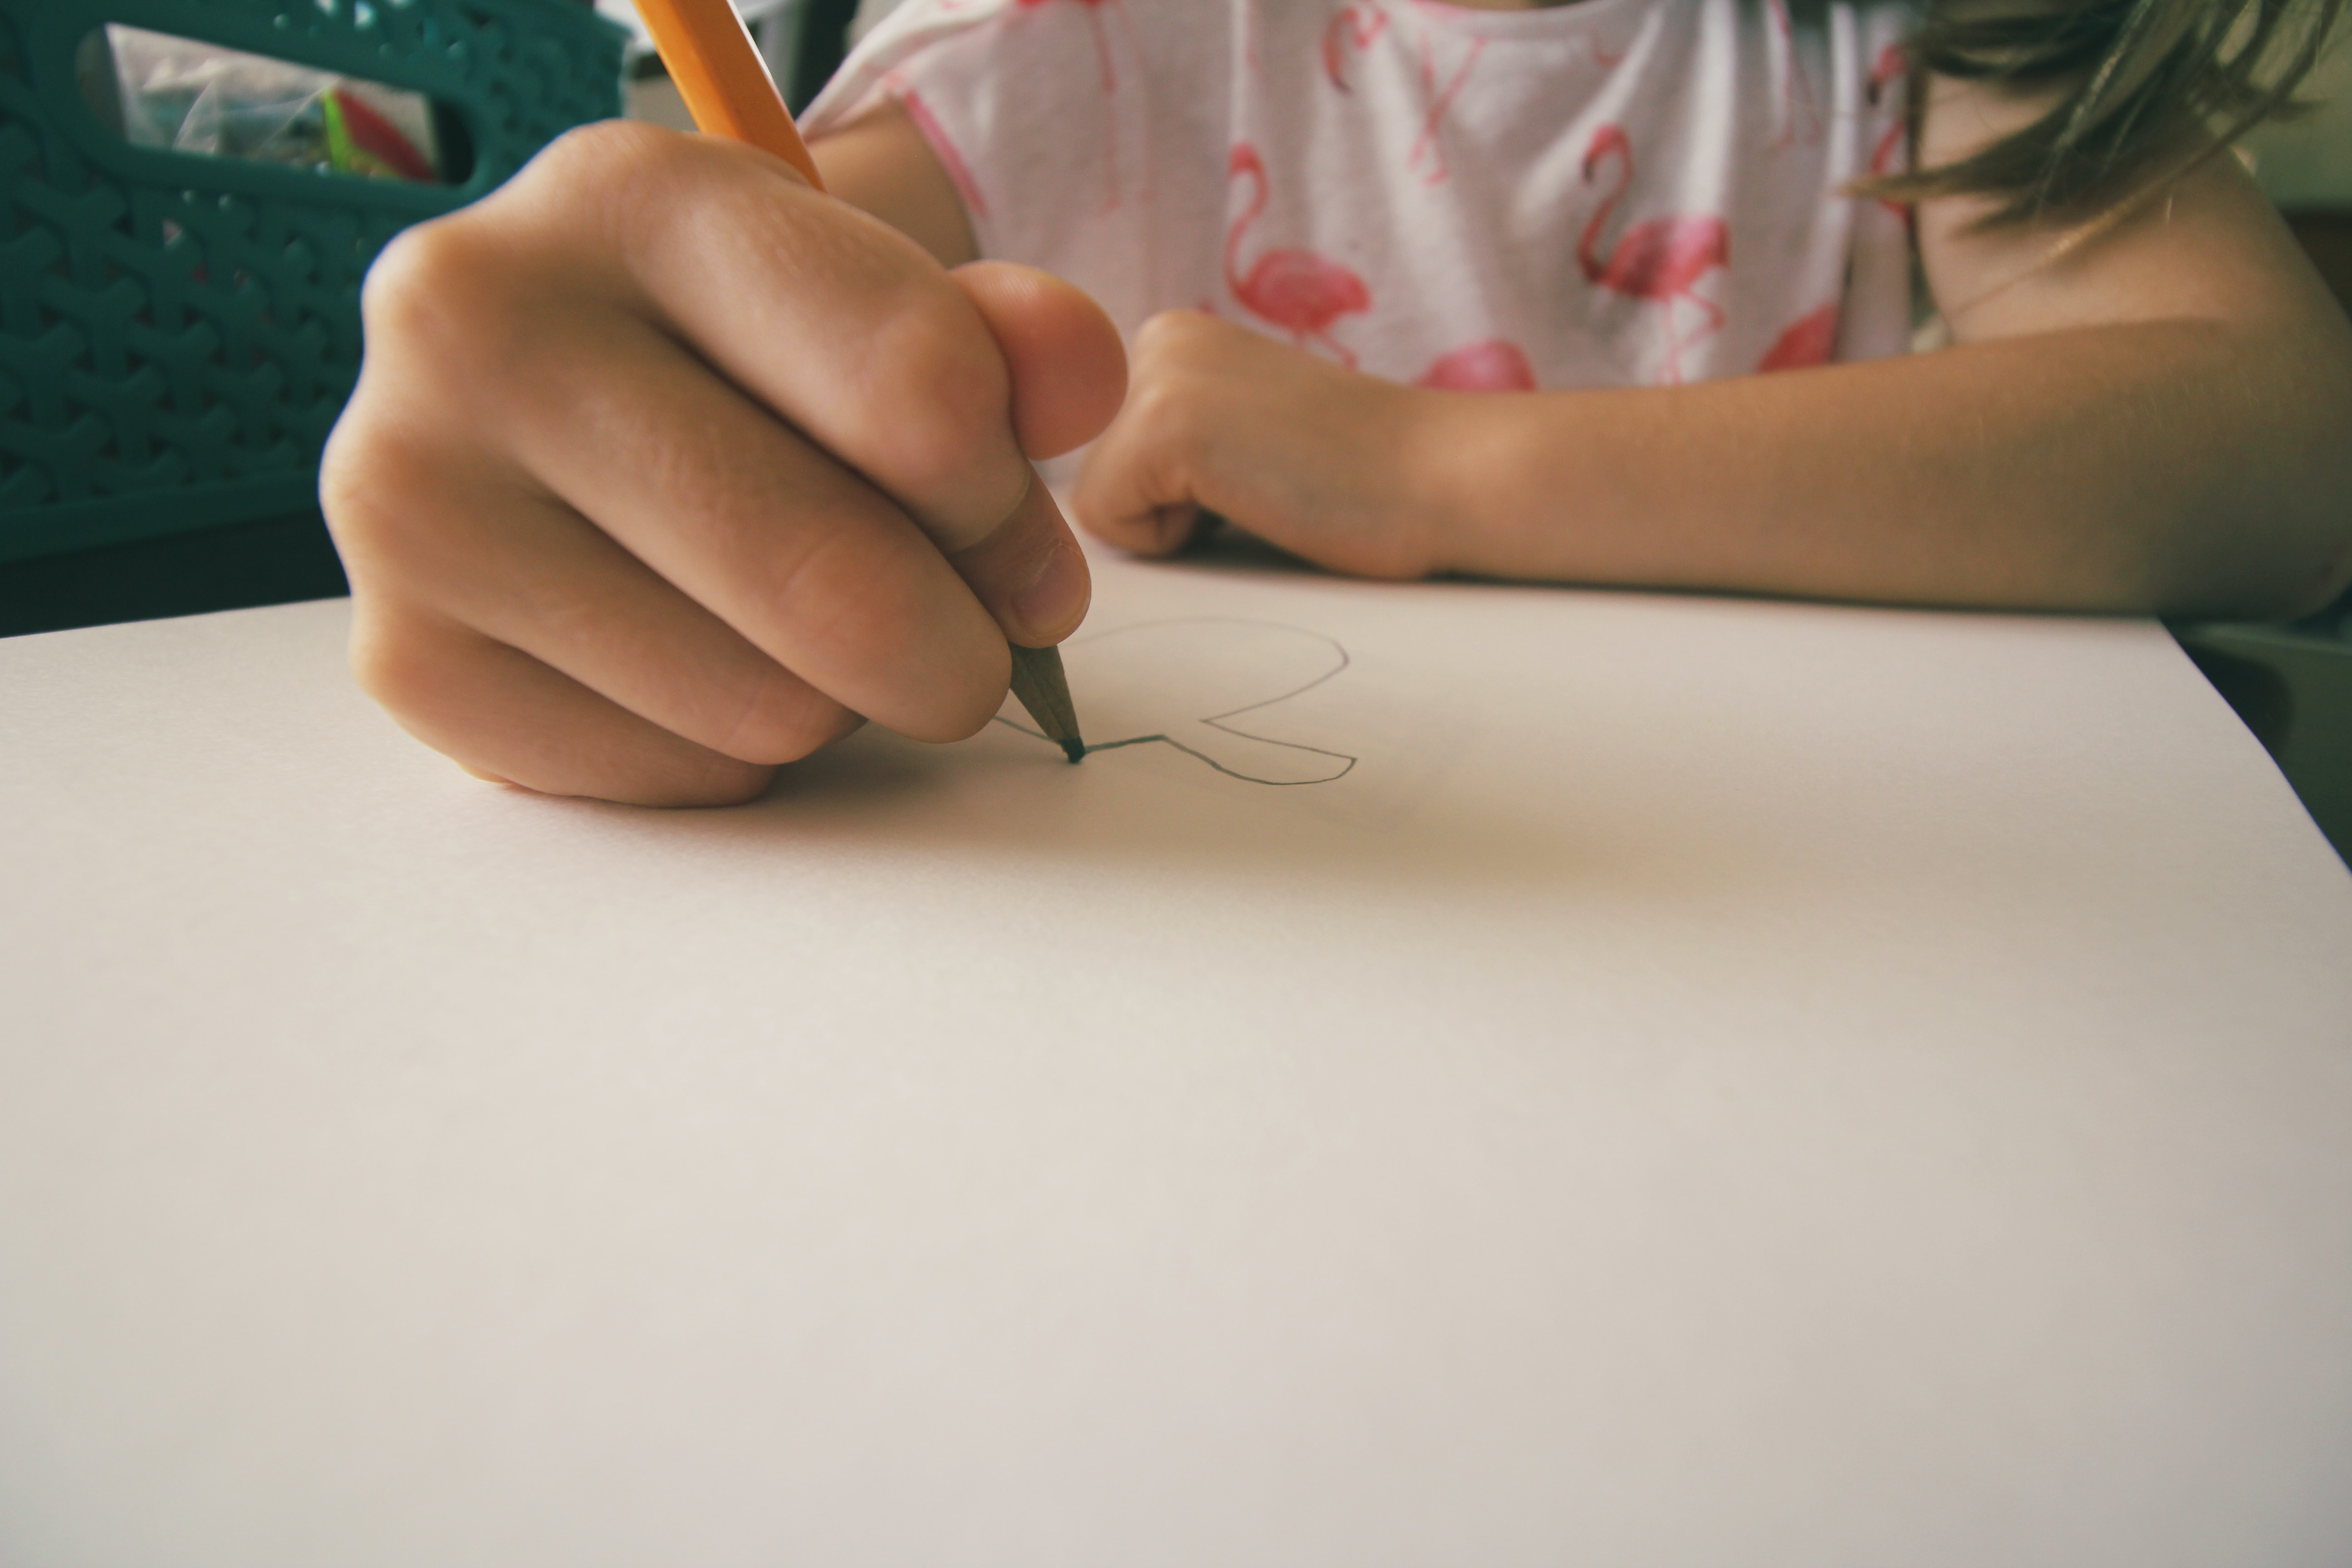 A little girl drawing a picture on paper with a pencil.